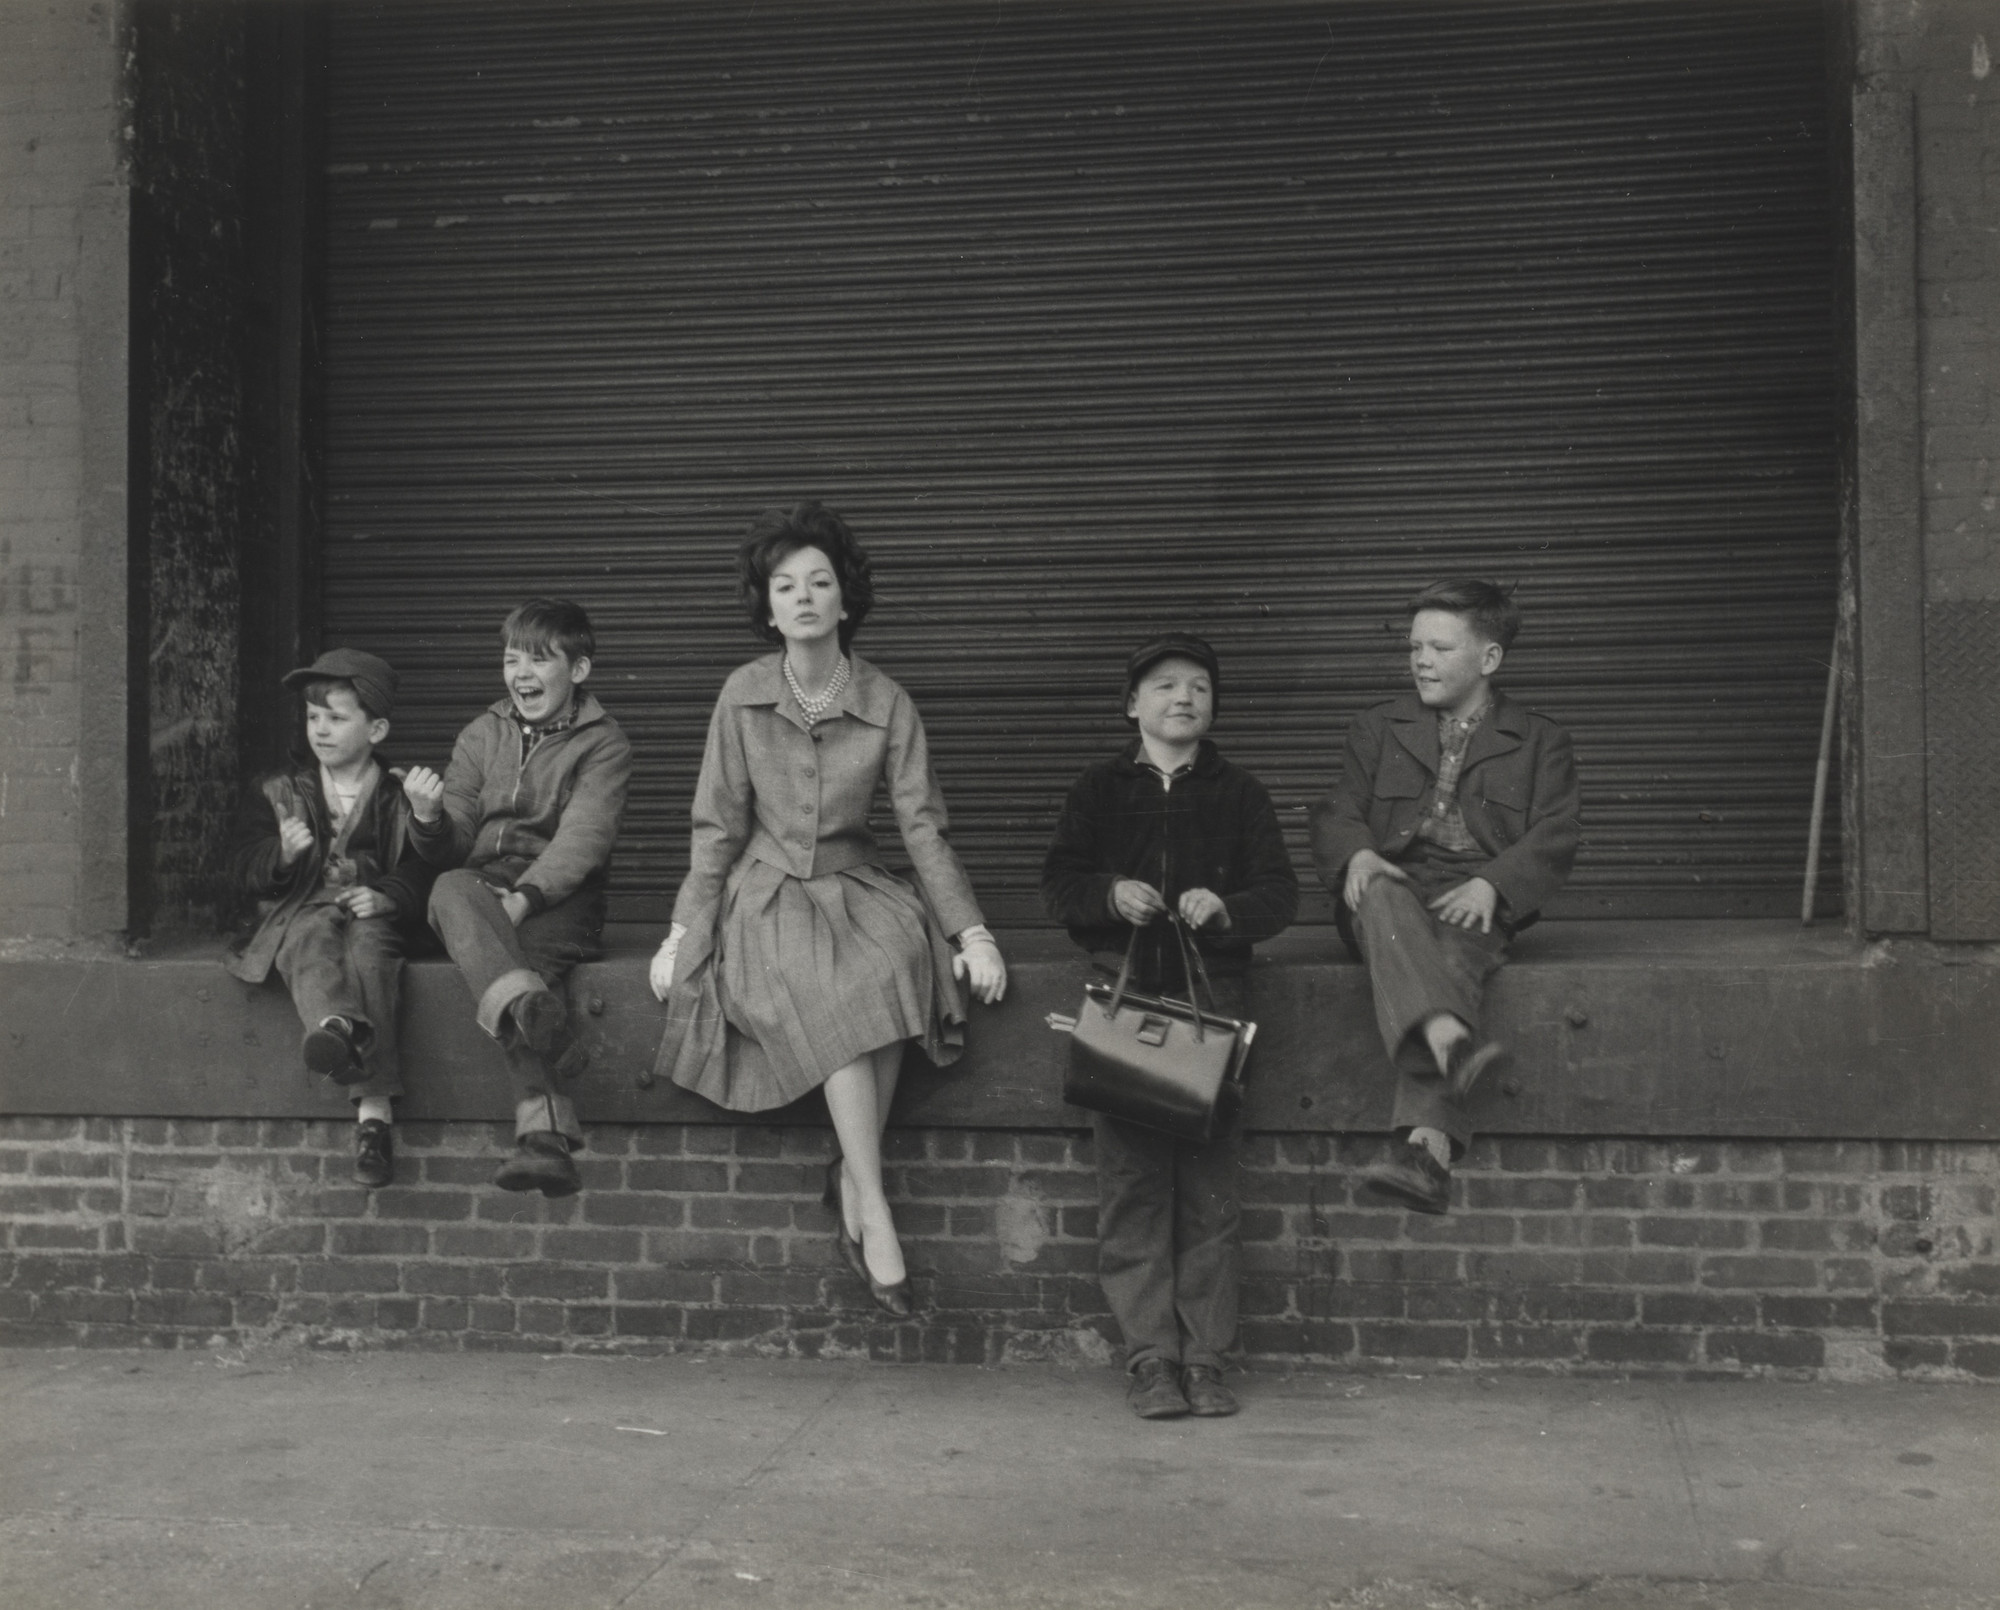 Lida Moser. Judy and Four Boys. 1961